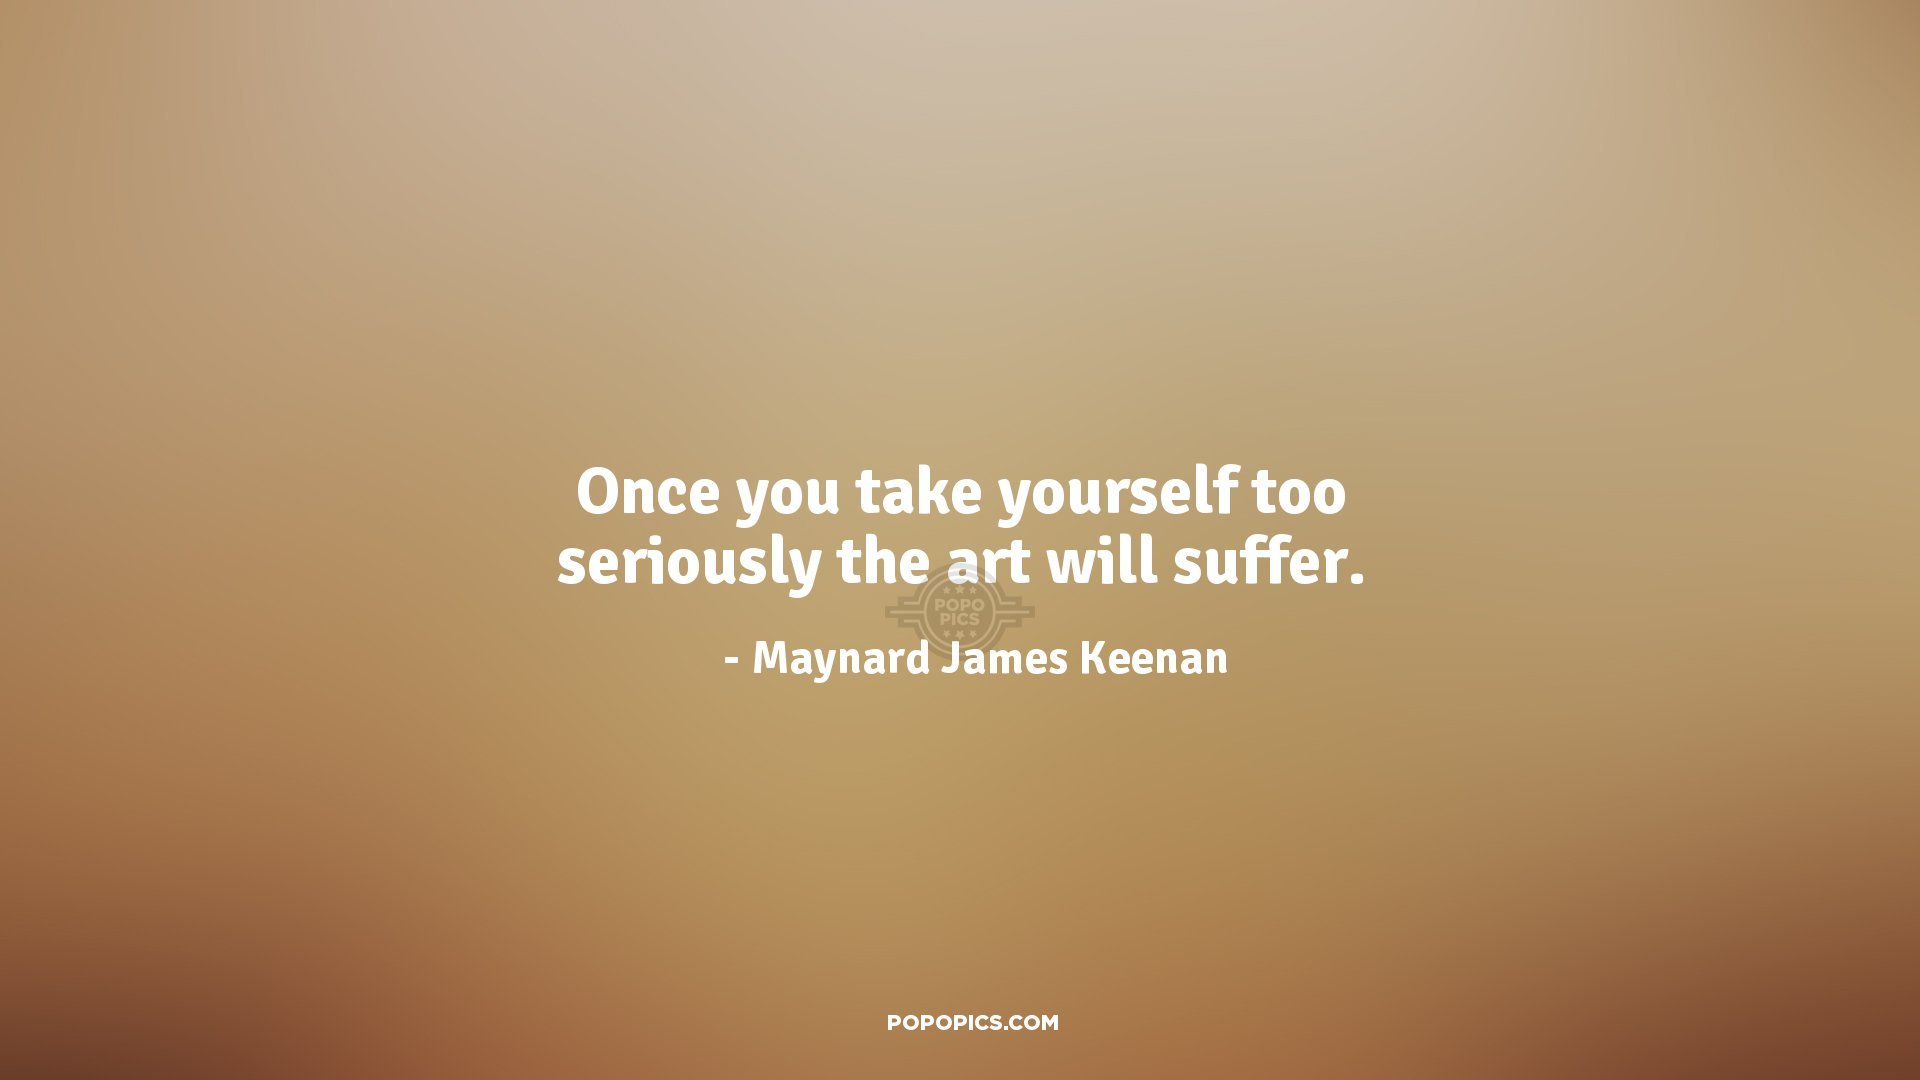 James Maynard Keenan Quotes: Once You Take Yourself Too Seriously The Art Will